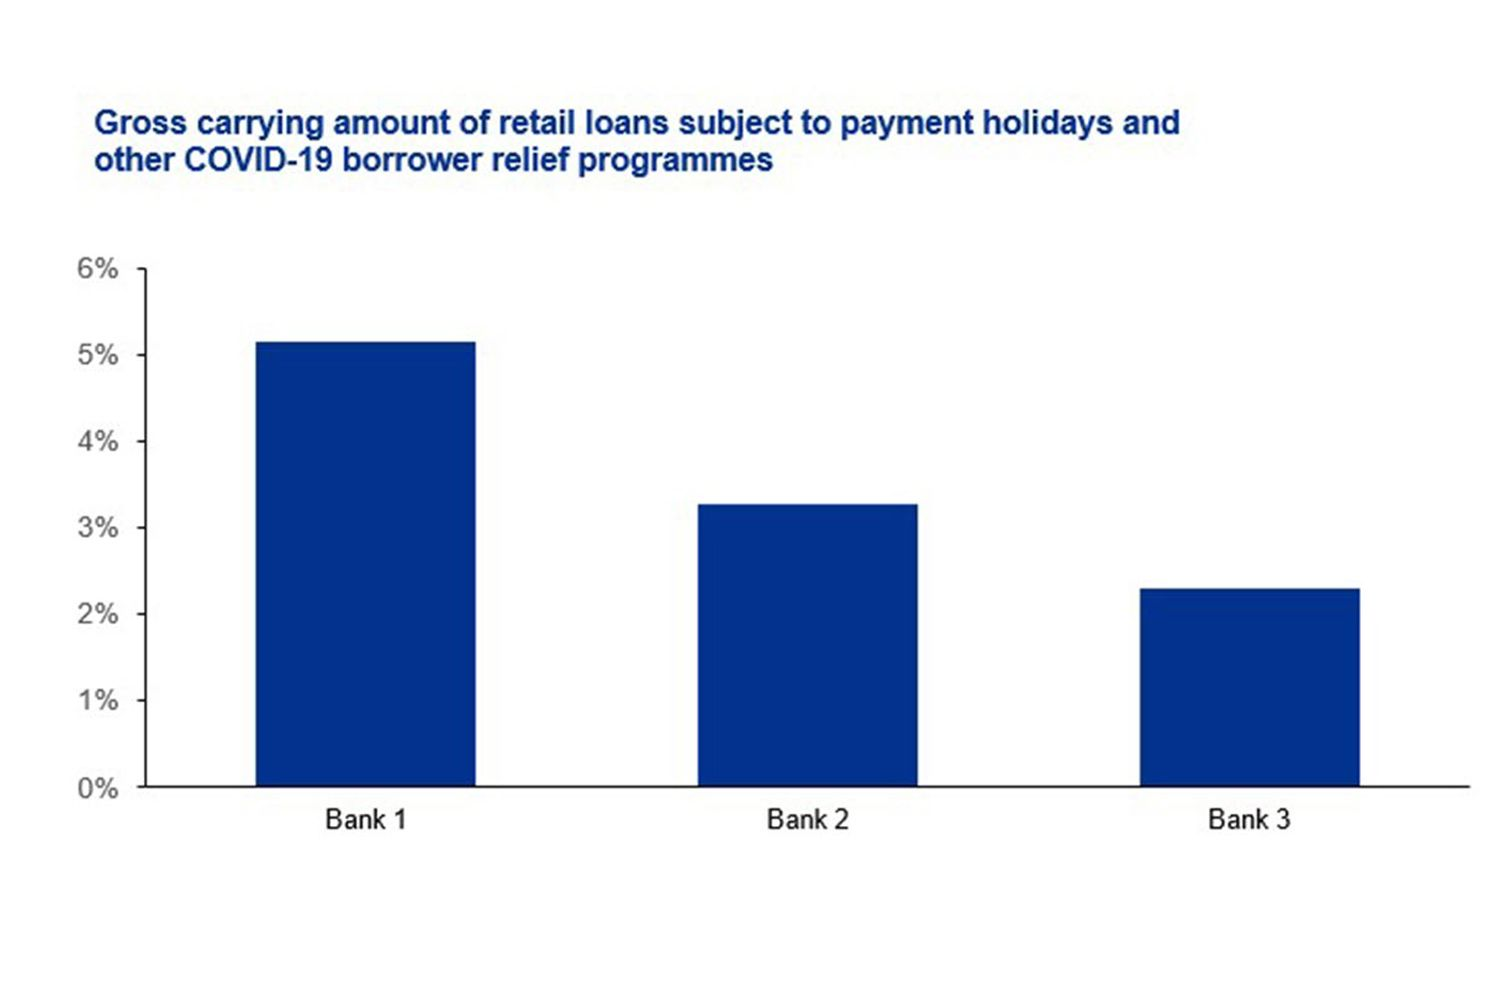 Gross carrying amount of retail loans subject to payment holidays